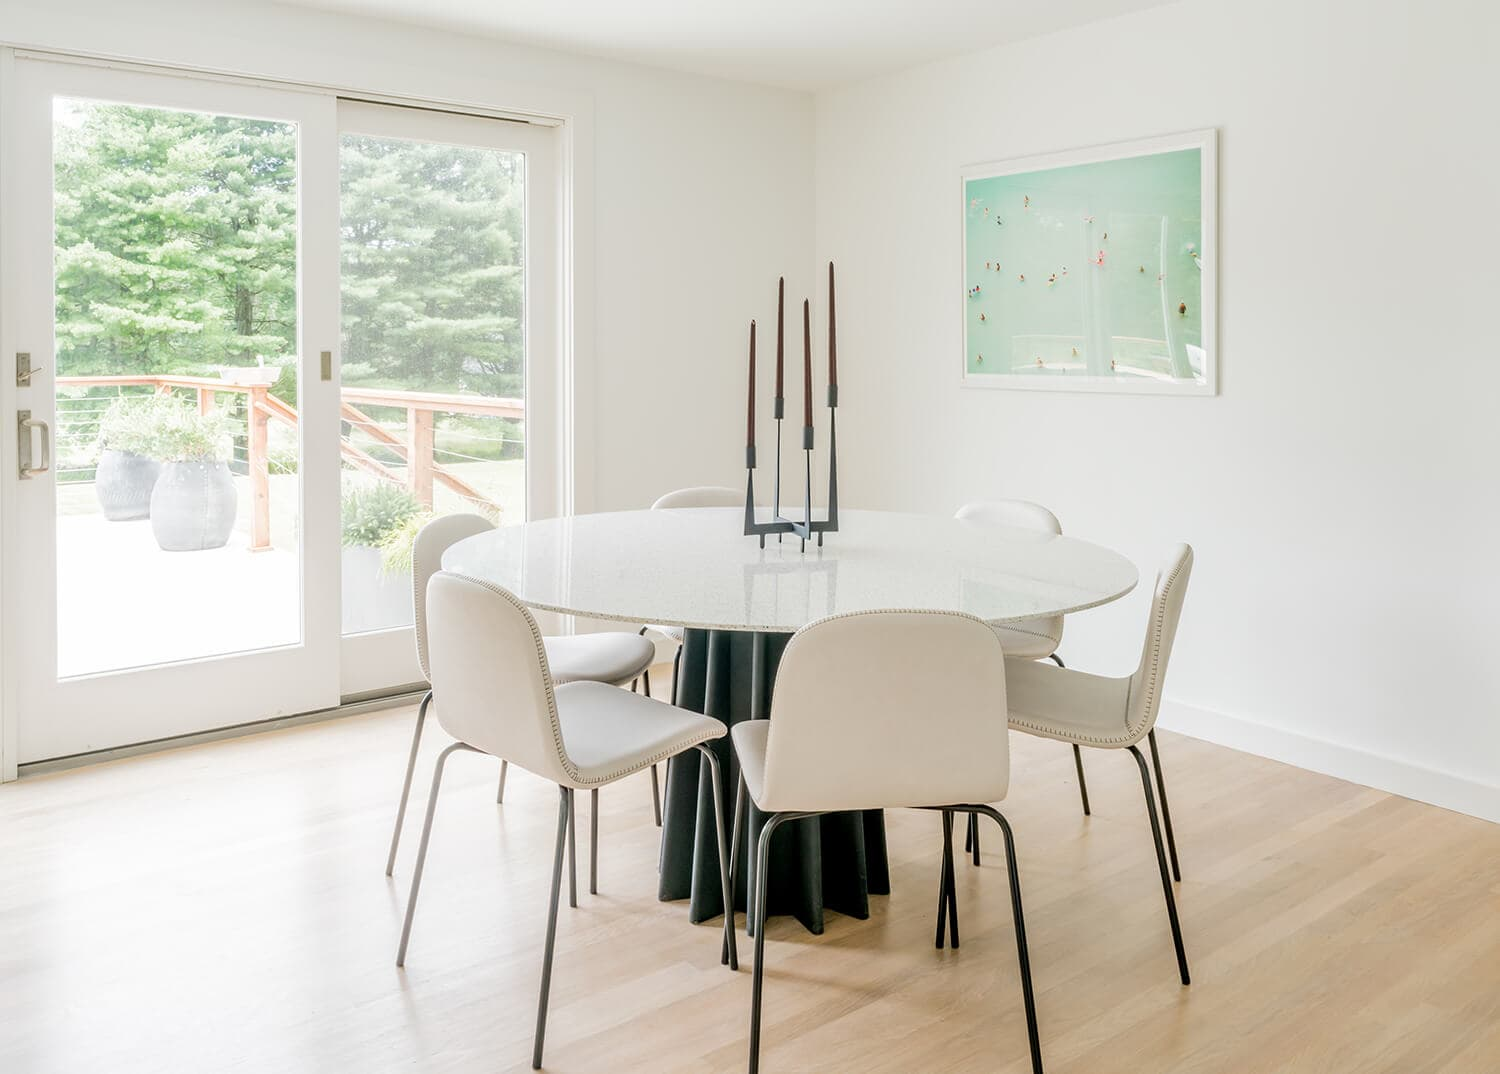 Modern white furniture in a light, bright dining area. Mountainside Addiction Treatment Center.